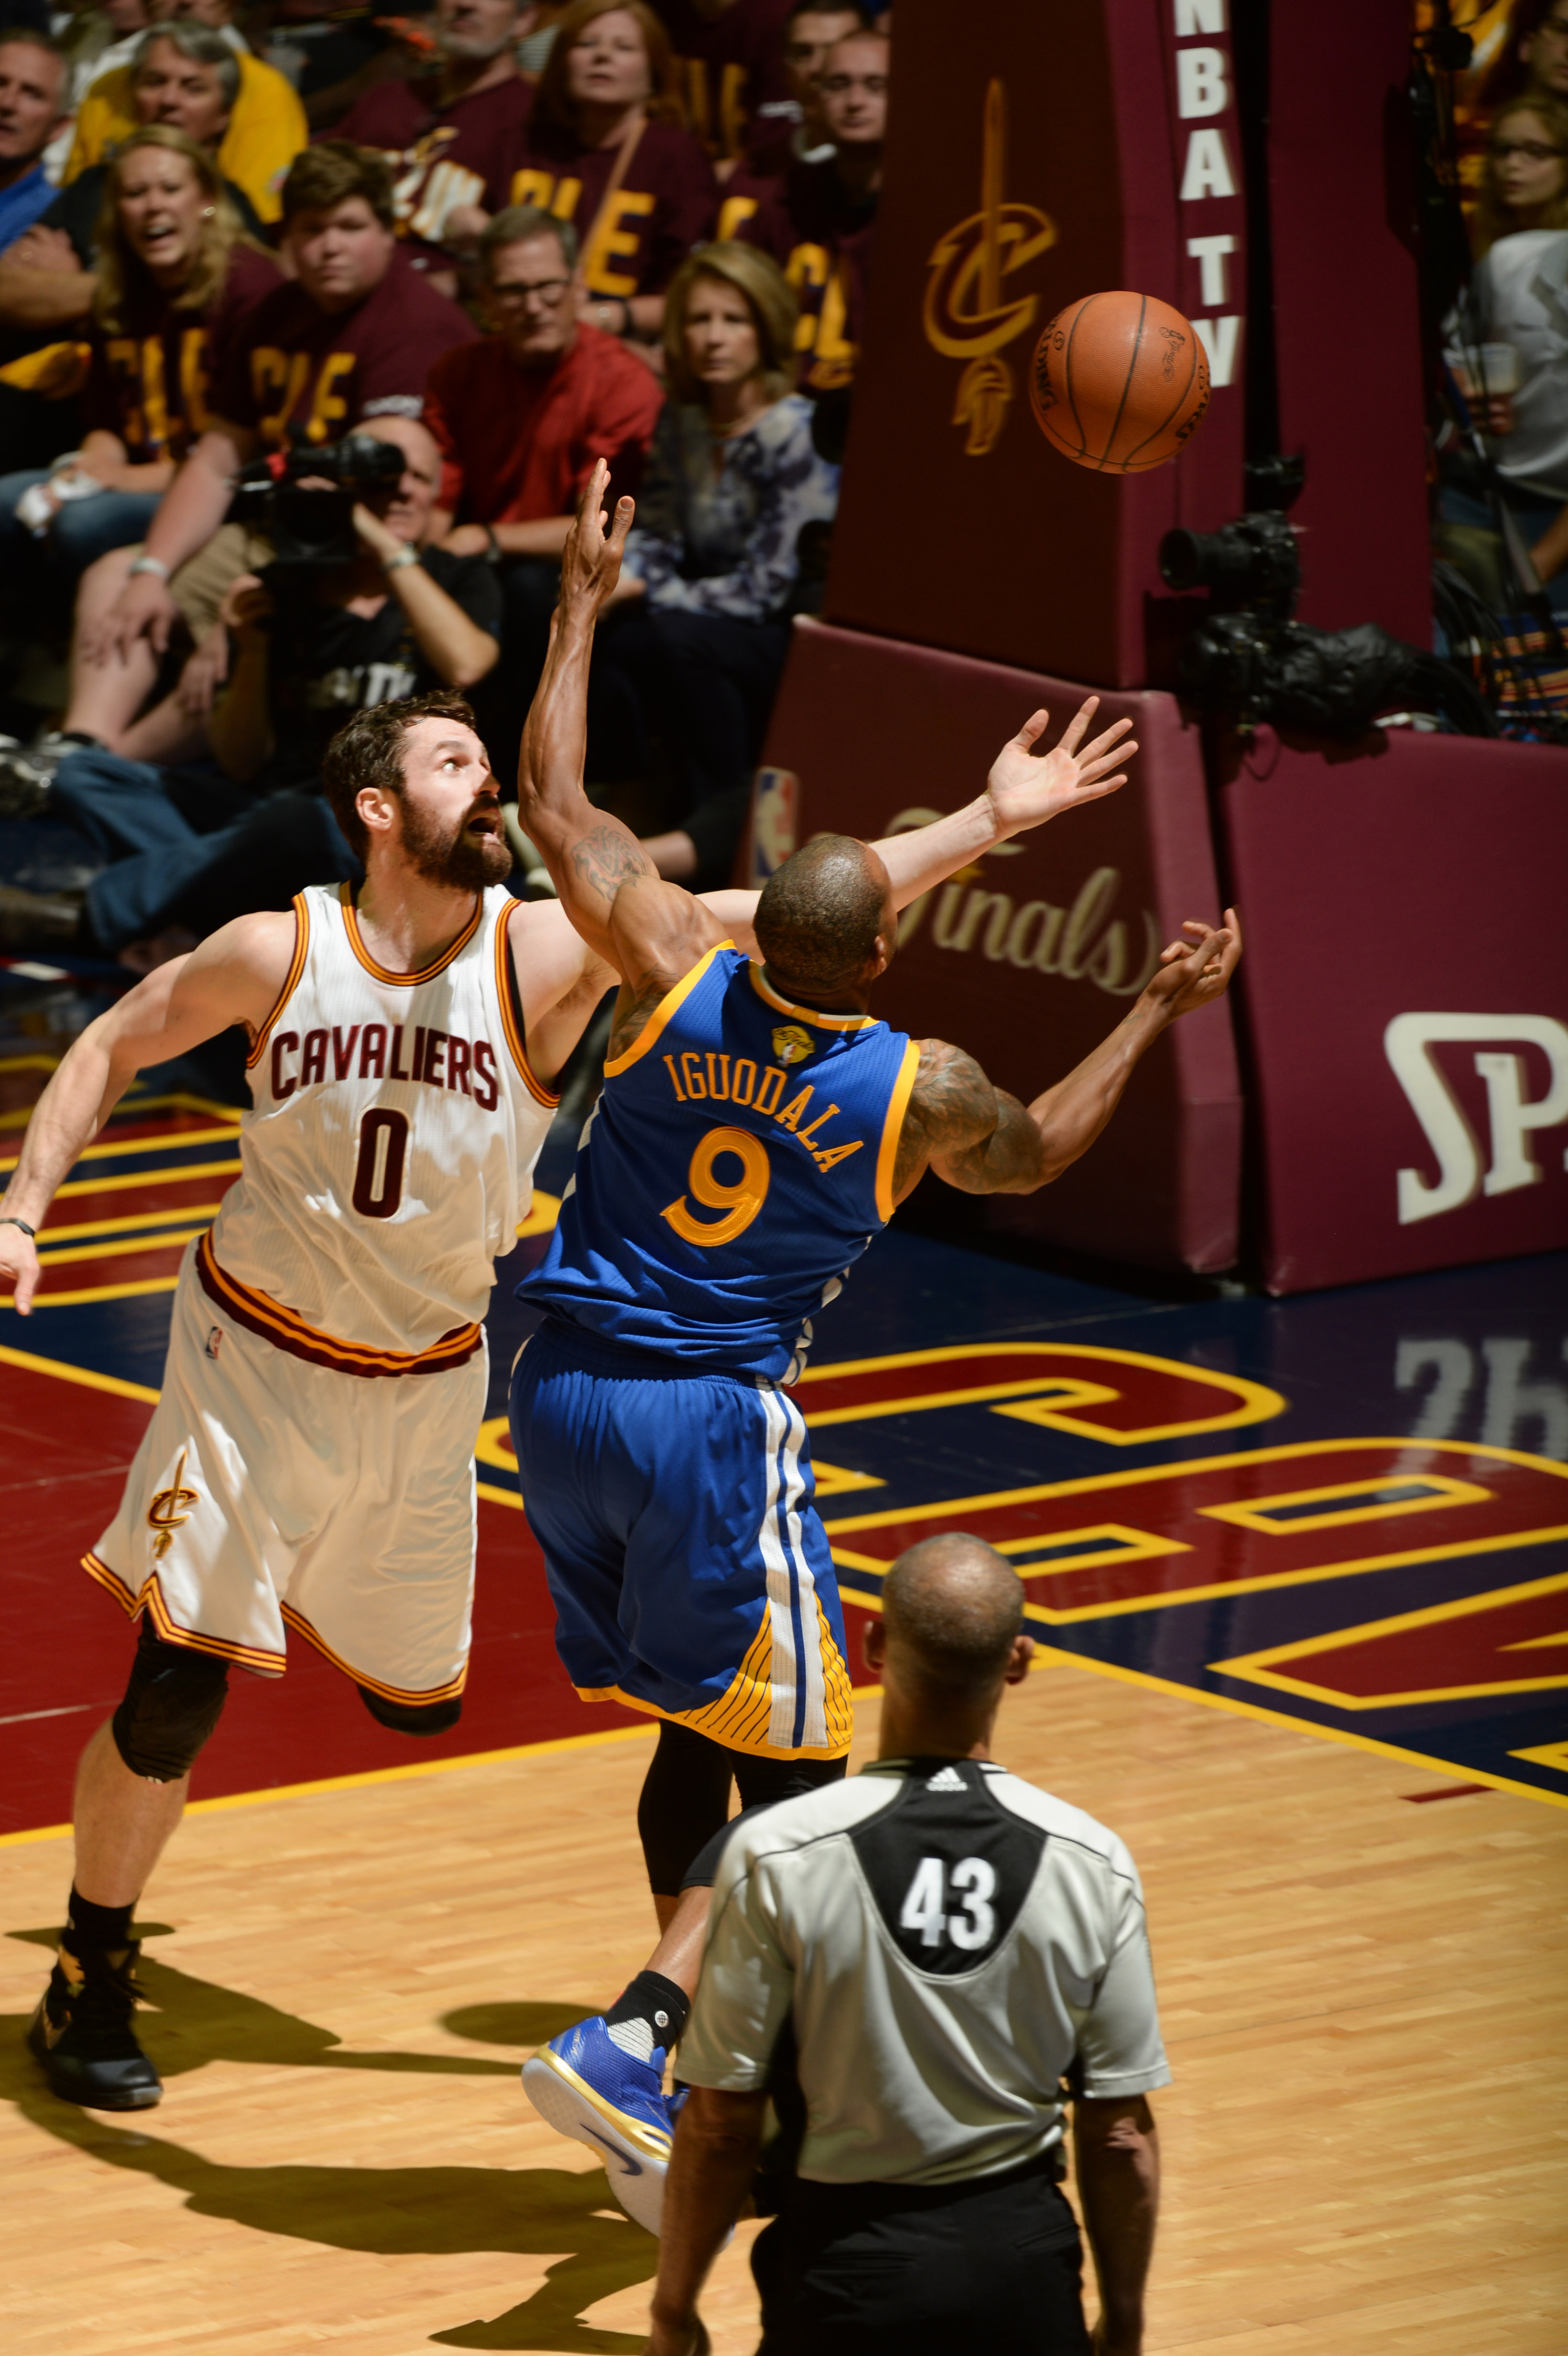 CLEVELAND, OH - JUNE 10: Kevin Love #0 of the Cleveland Cavaliers reaches for the rebound against Andre Iguodala #9 of the Golden State Warriors during Game Four of the 2016 NBA Finals on June 10, 2016 at Quicken Loans Arena in Cleveland, Ohio. (Photo by